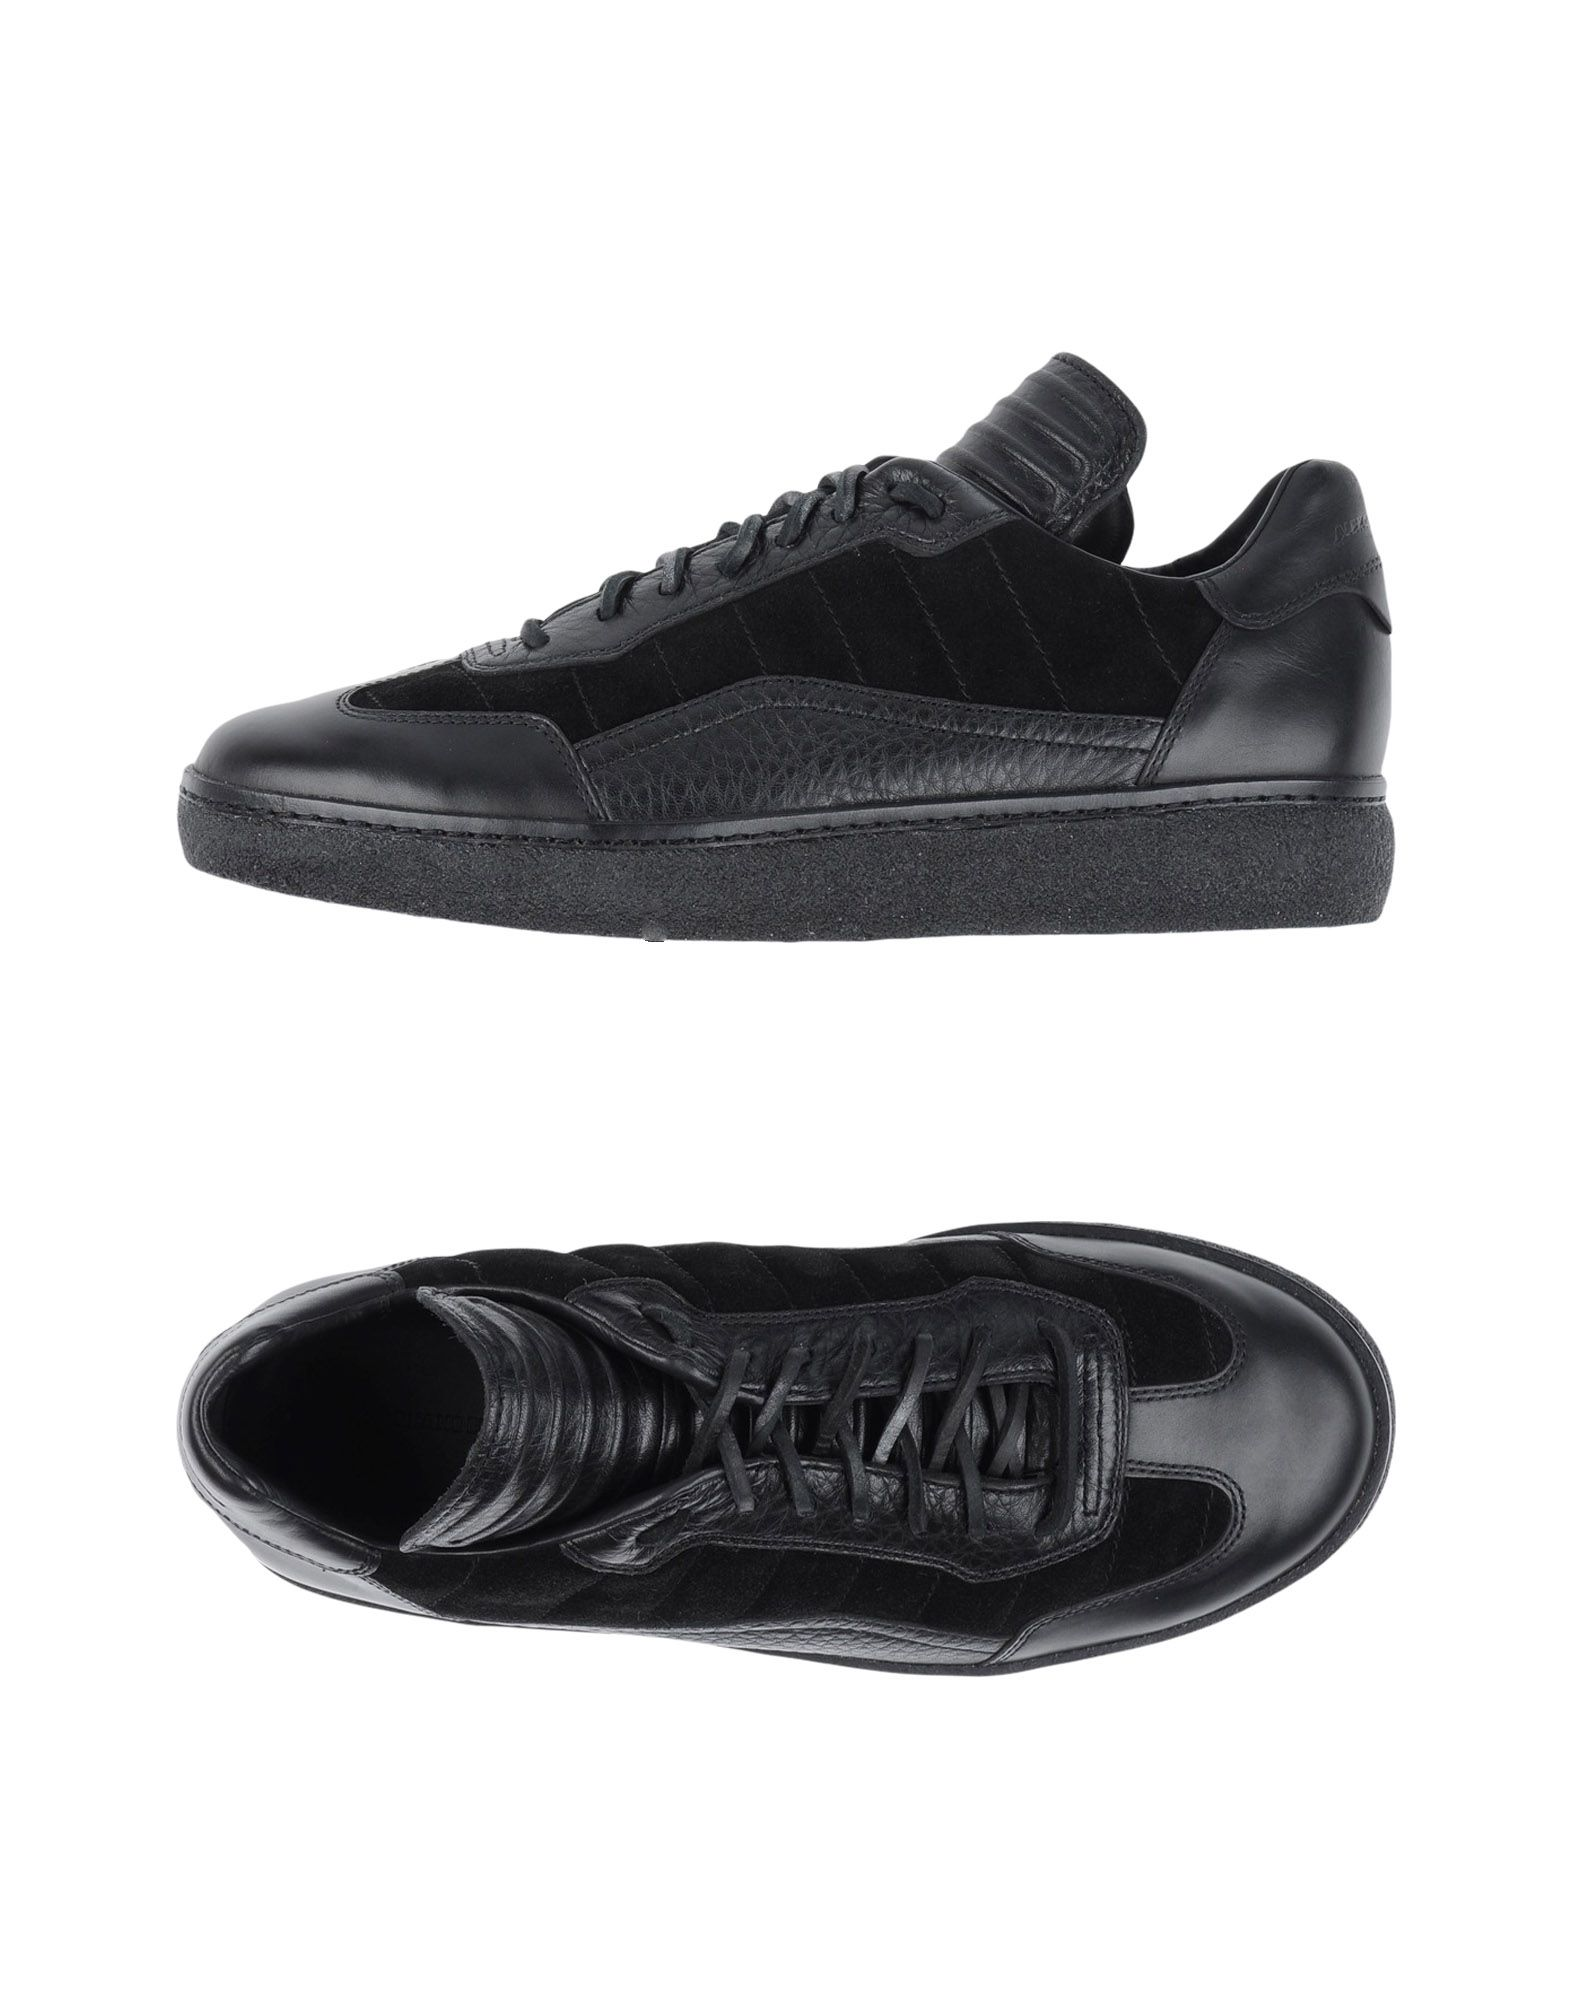 Alexander Wang Sneakers - Men Alexander Wang Wang Wang Sneakers online on  Australia - 11278985MP e1148c